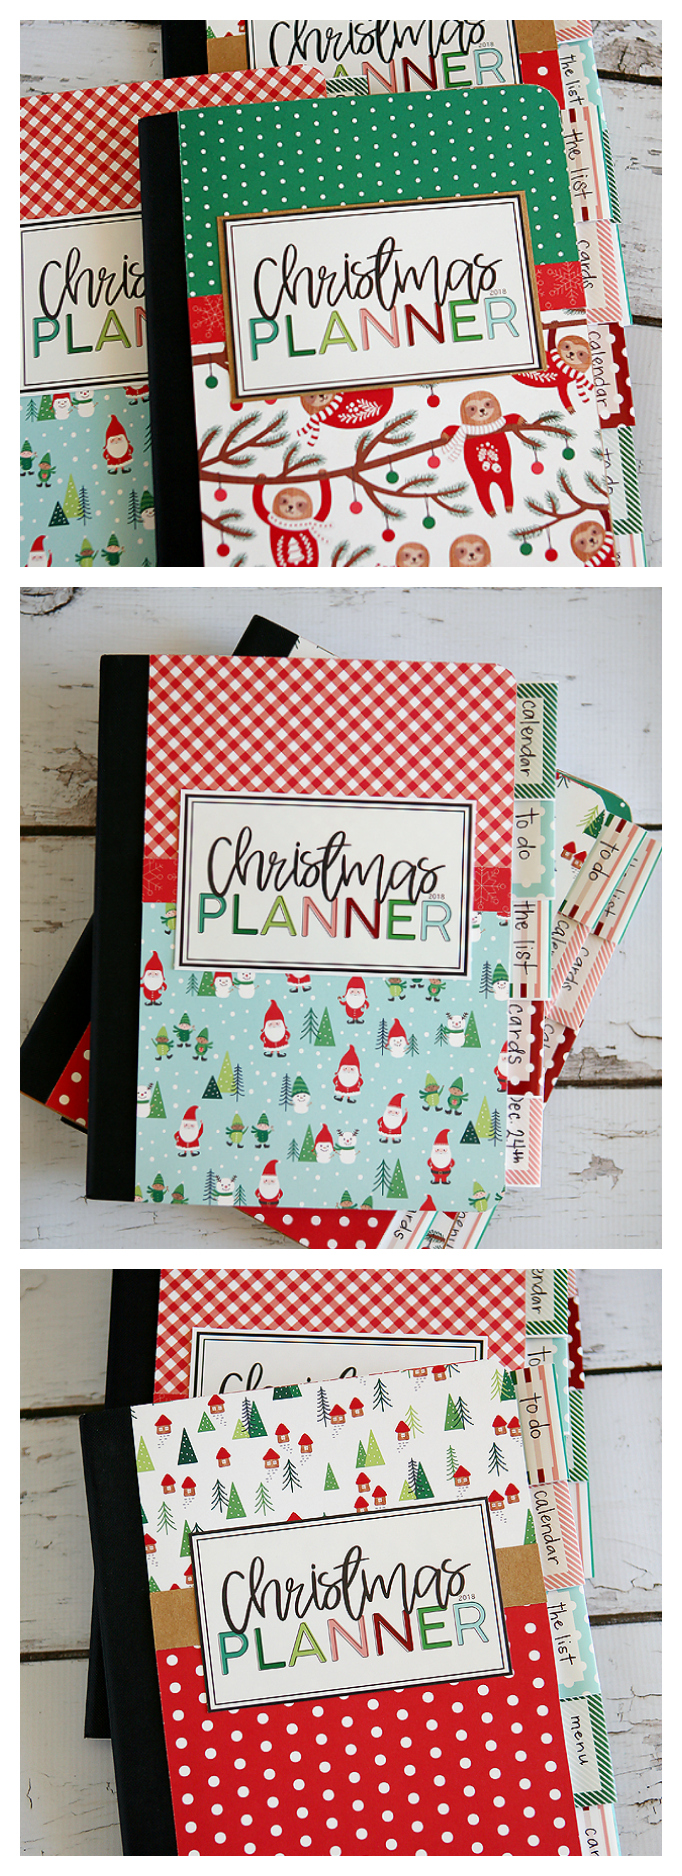 DIY Christmas Planners. Includes all the free printables you need to make them! #Christmasplanner #Christmascraft